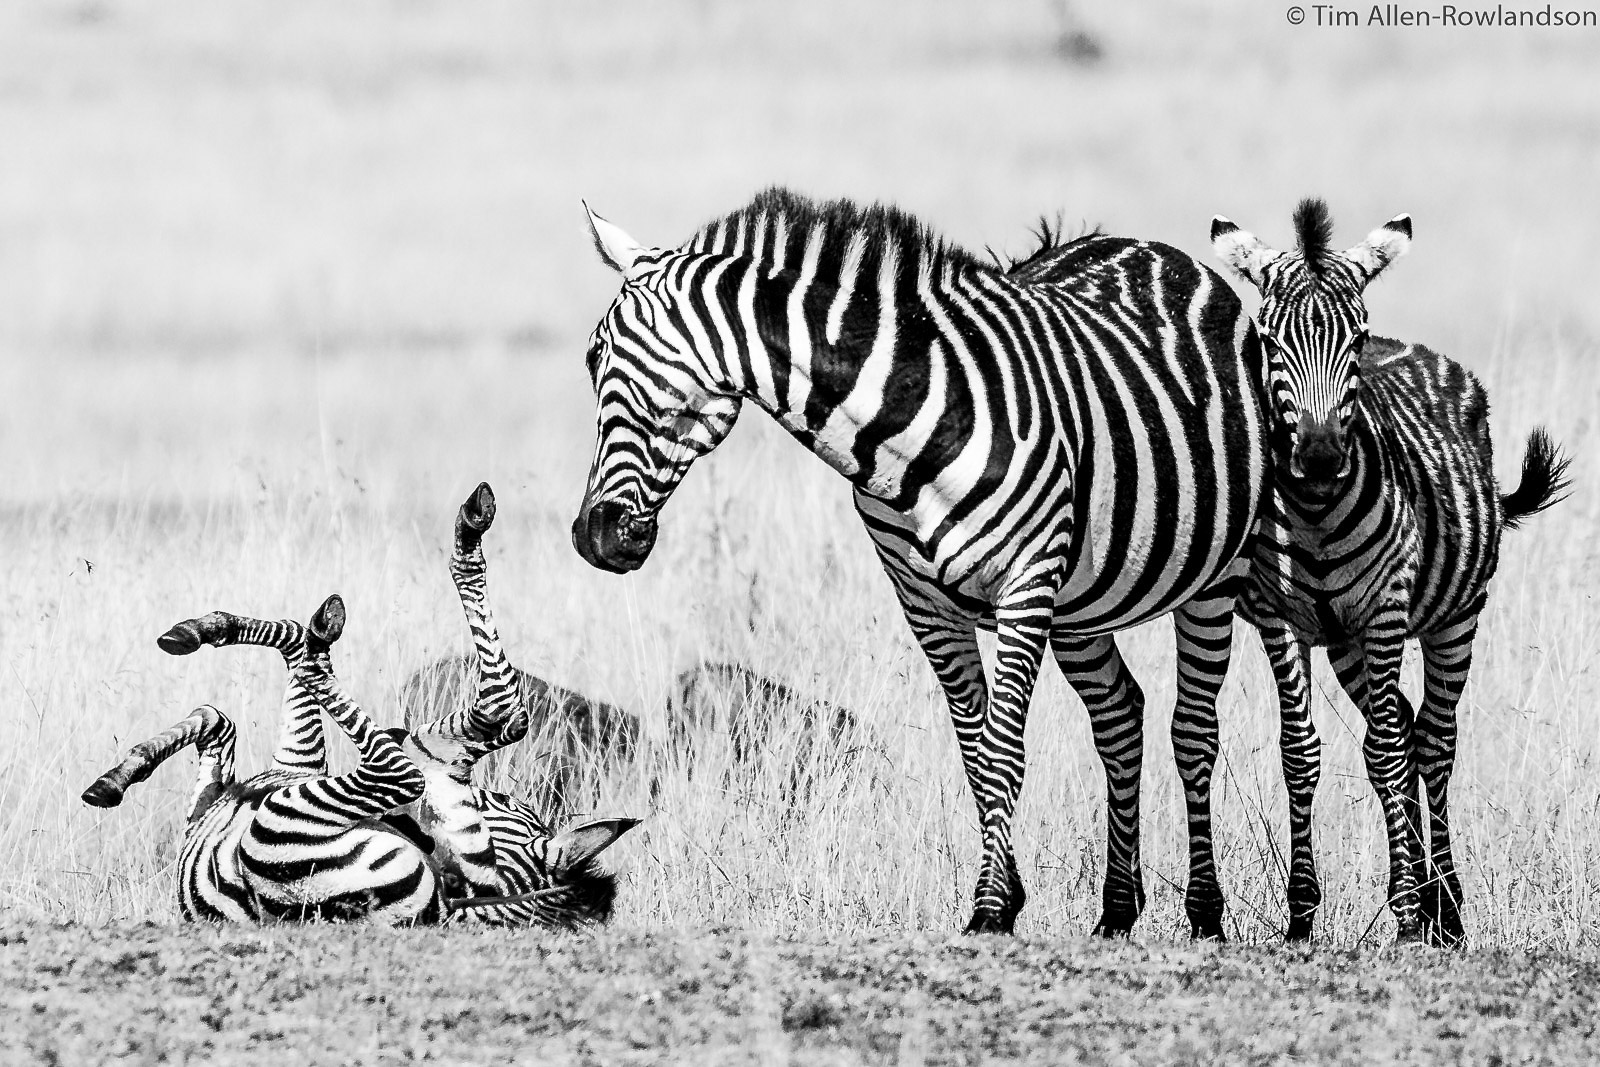 Zebra foal dusting while mother looks on, Masai Mara